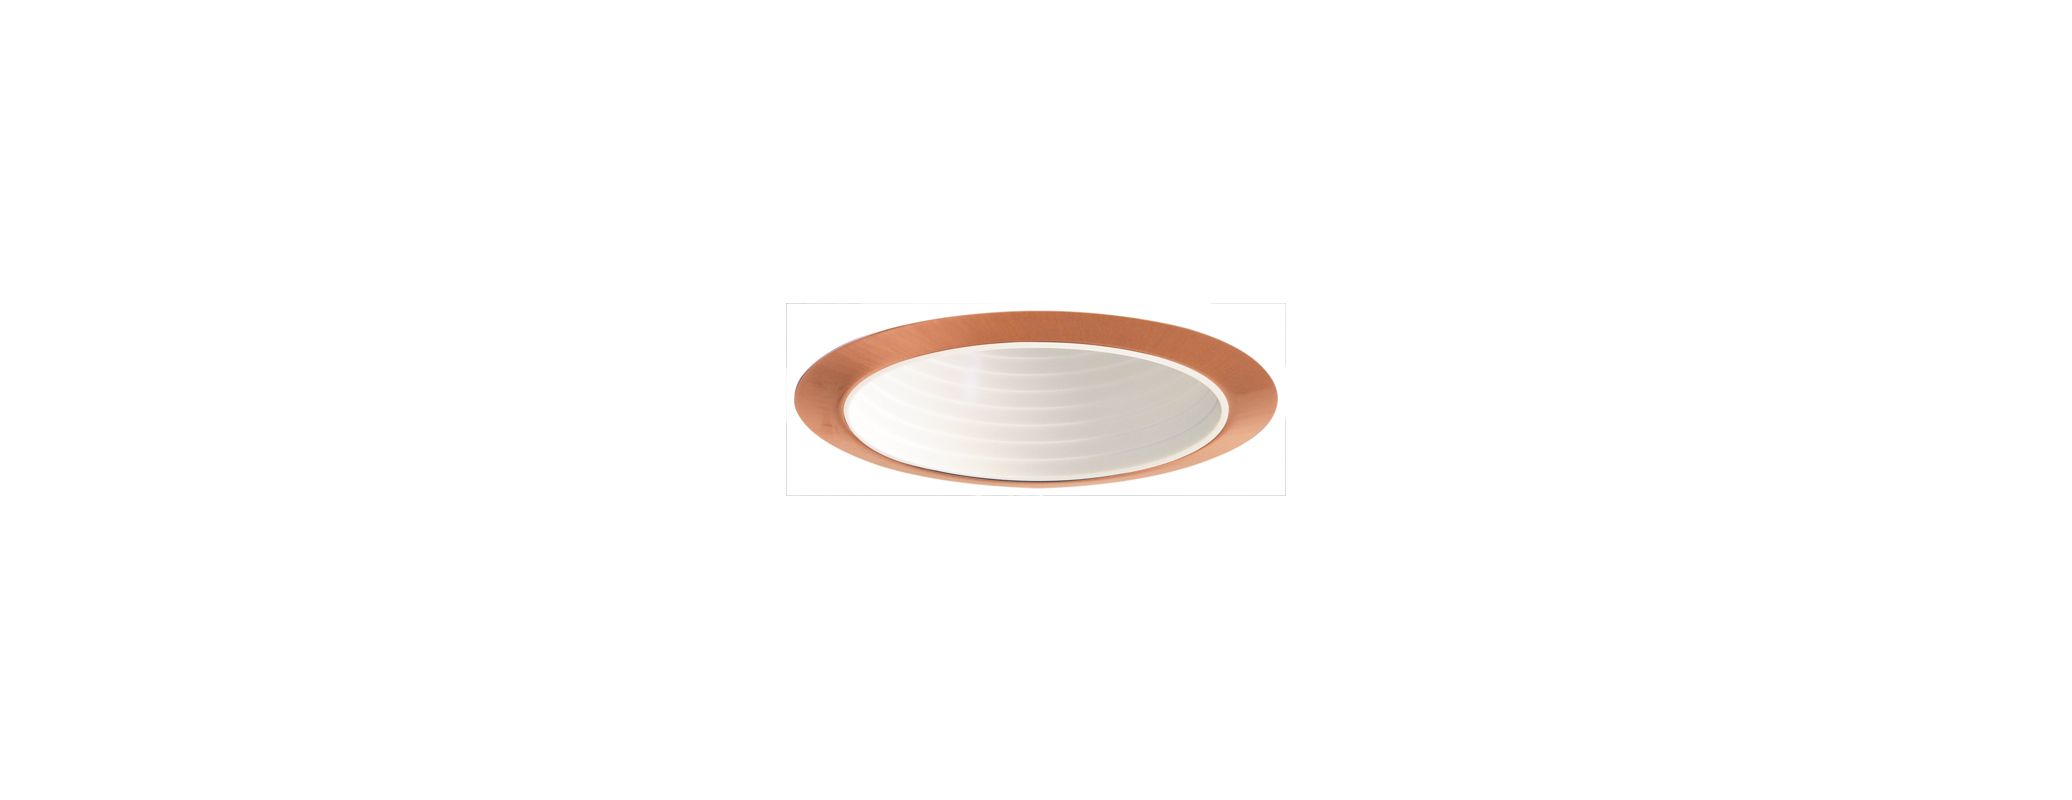 "Elco ELP530 5"" Phenolic Baffle White / Copper Recessed Lights Baffle"